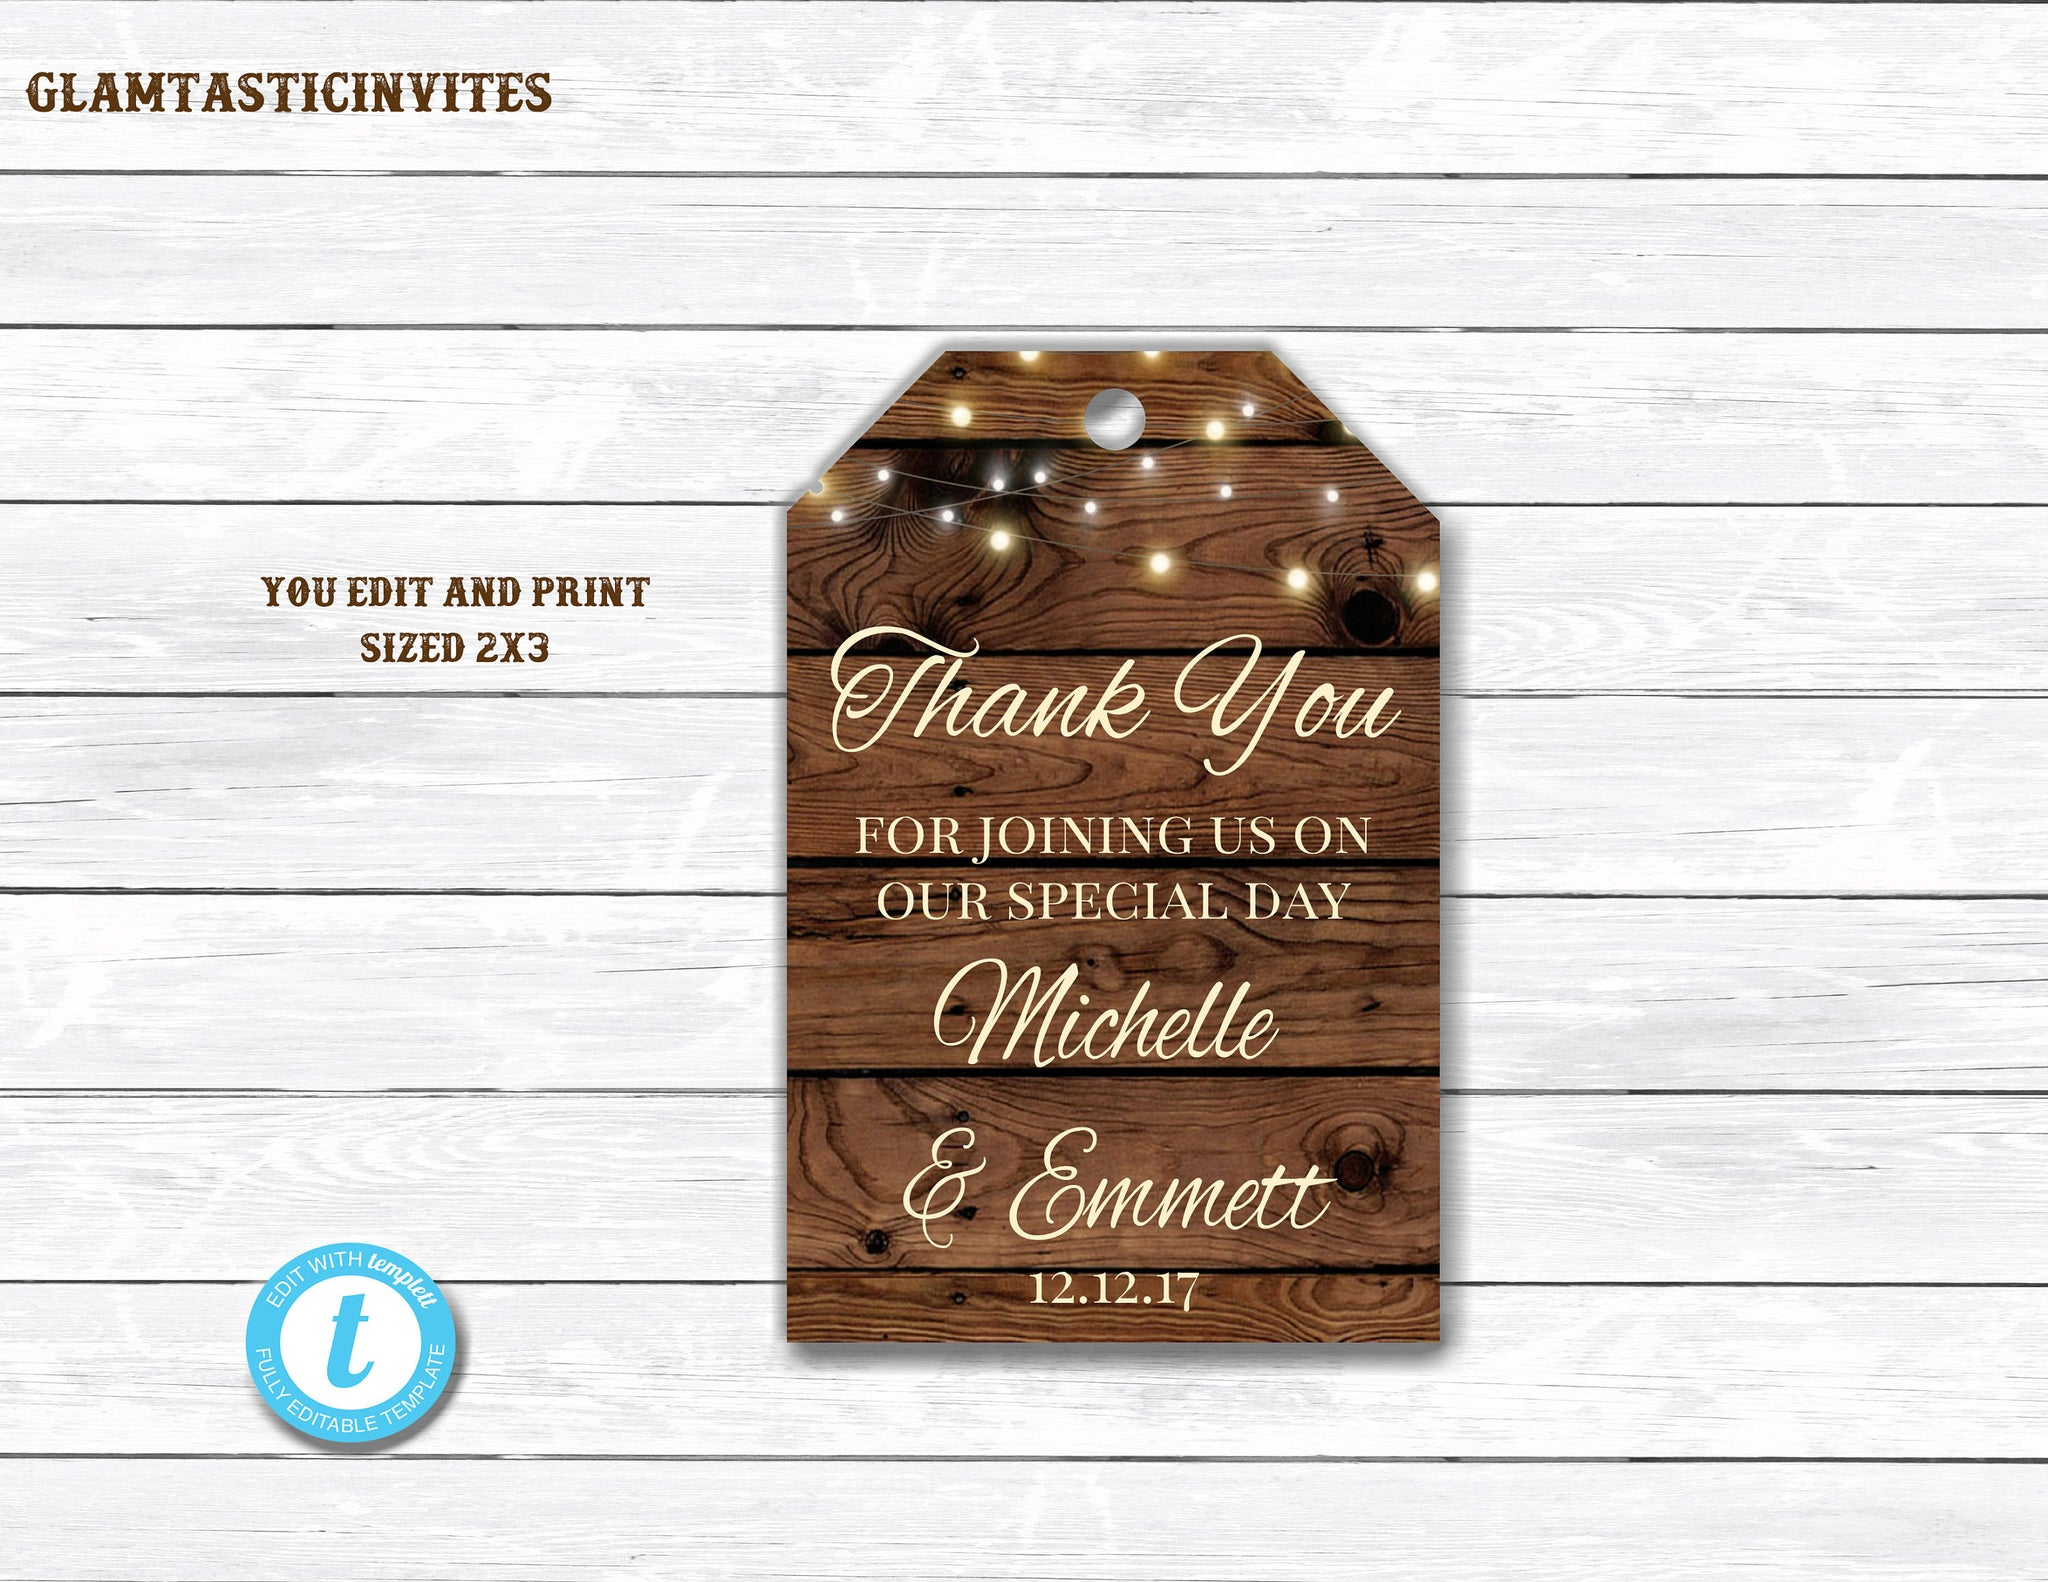 Wedding Favor Bag Template, Rustic Wedding Favor, Template, Rustic Gift Tags, Rustic Gift Tag Template, Favor Tags, Tag Template, DIY